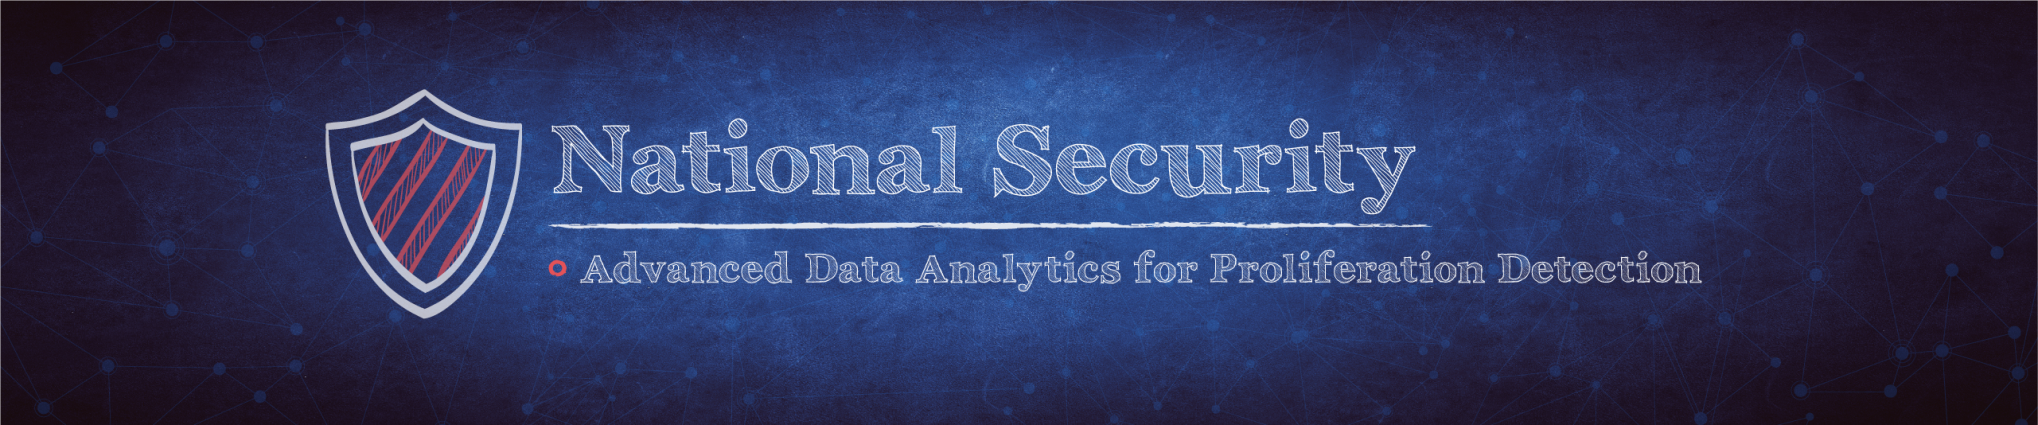 National Security: Advanced Data Analytics for Proliferation Detection